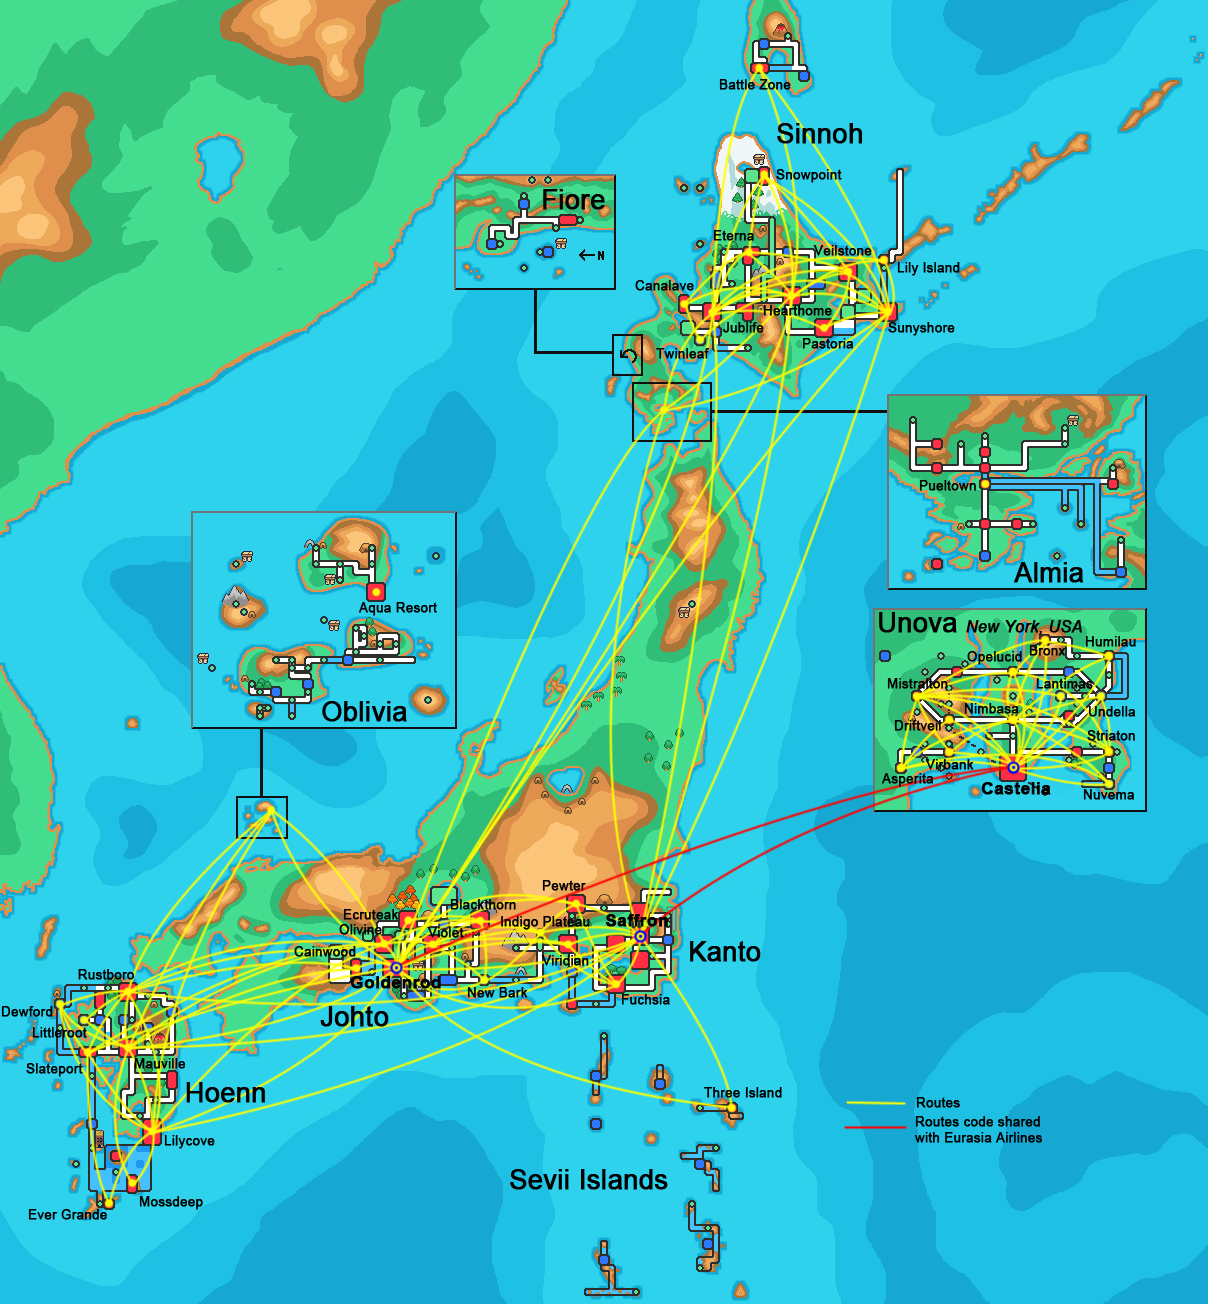 Regions of pokemon world map pokemon sinnoh map almia region map pokemon airlines route map 2013 by maxcheng95 on deviantart on pokemon sinnoh map almia region map of pokemon world gumiabroncs Images